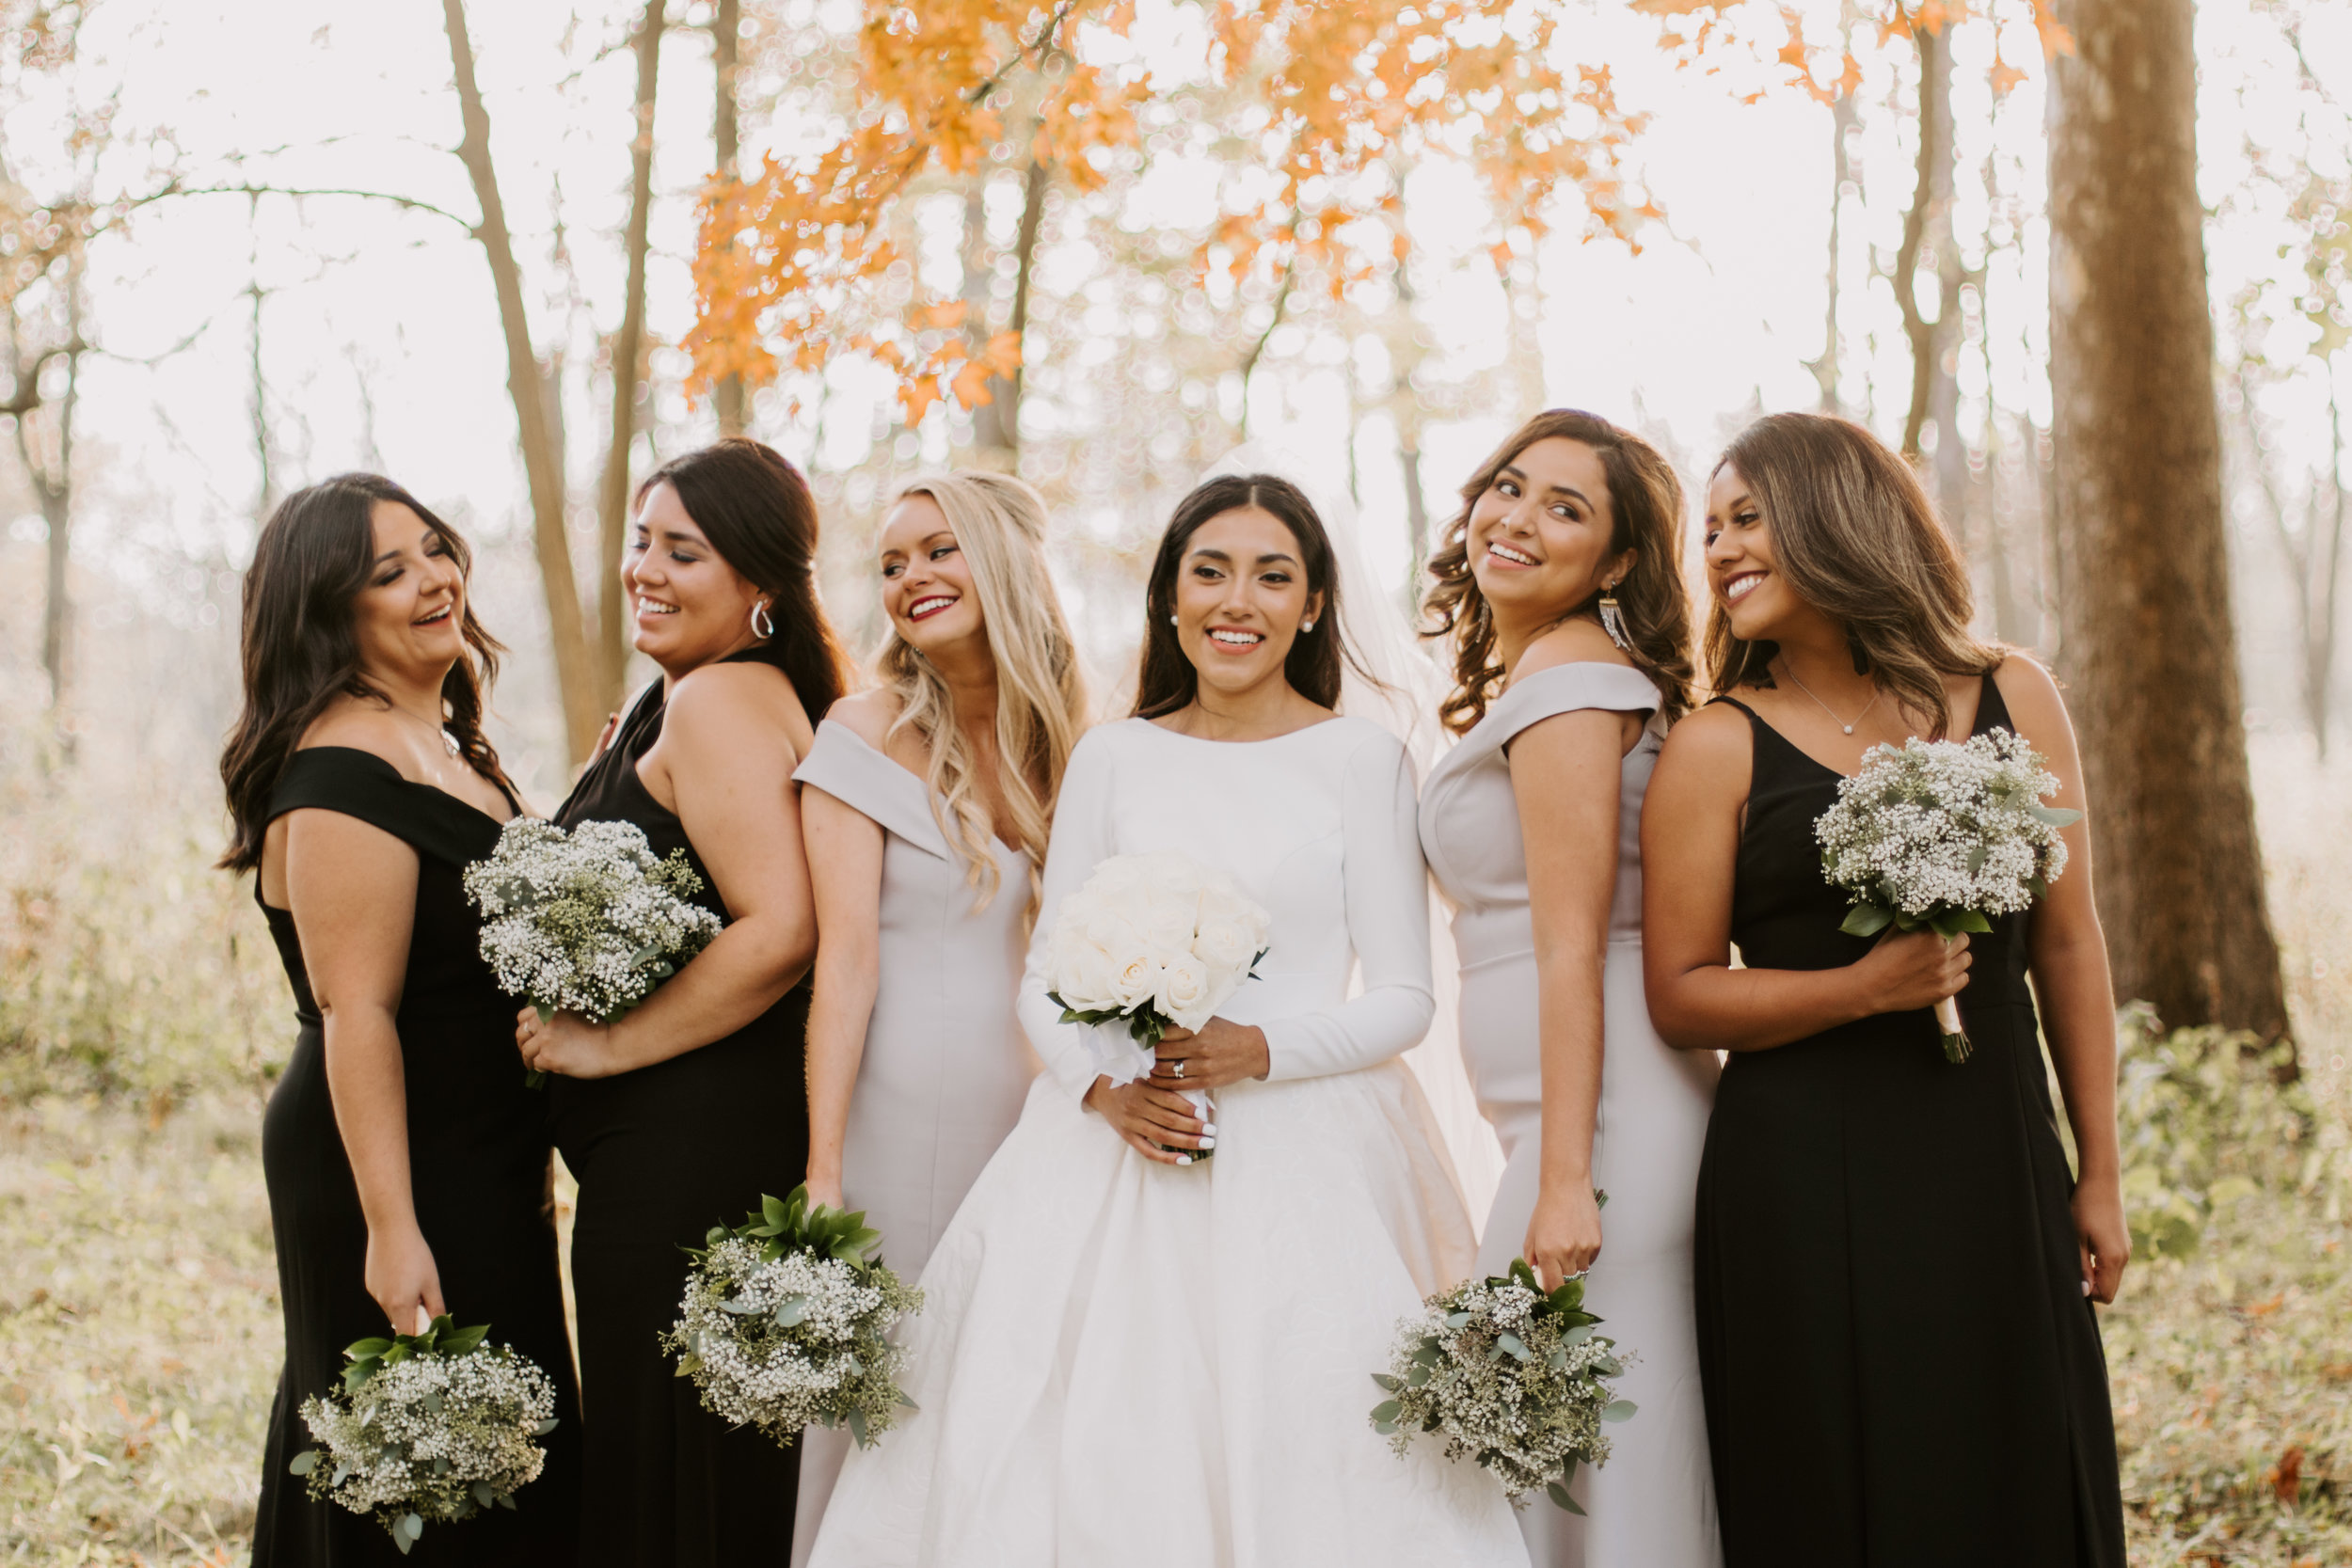 Arlington Heights Wedding Forest Preserve Fall Photo by Kerri Carlquist Photography